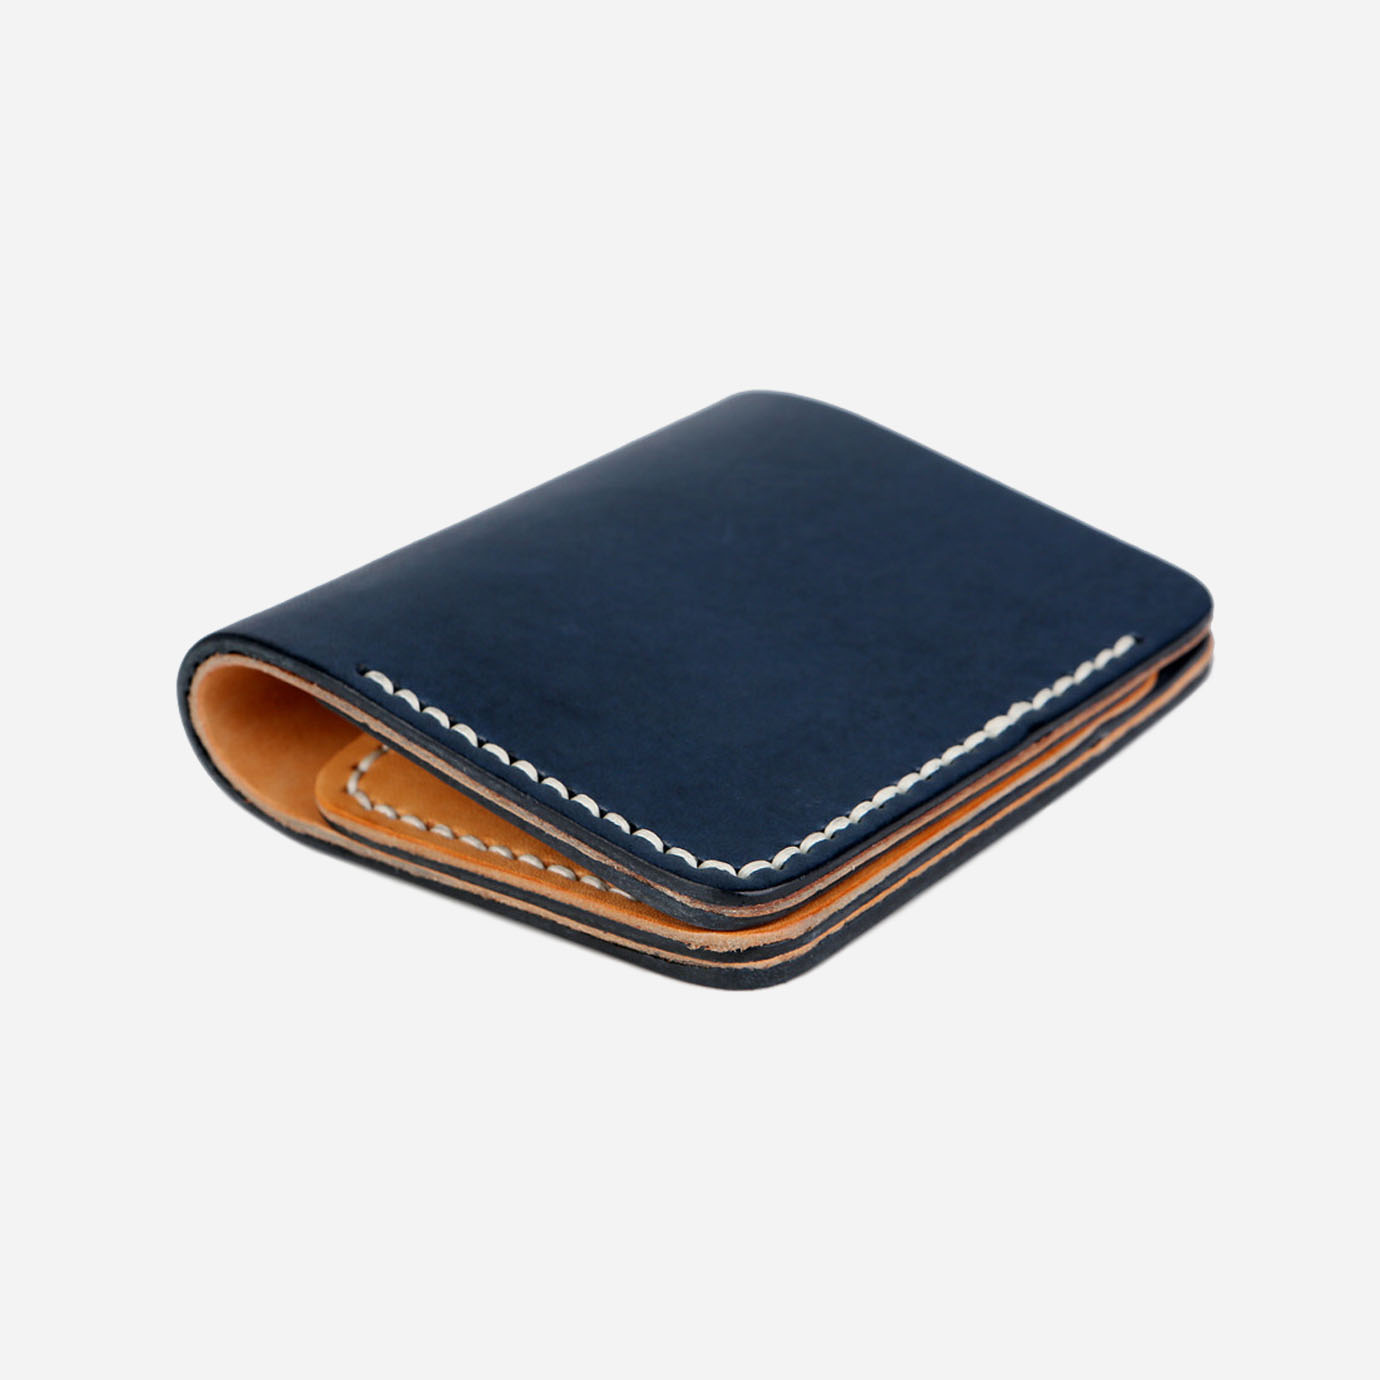 Nordace Note Folio - Leather Wallet